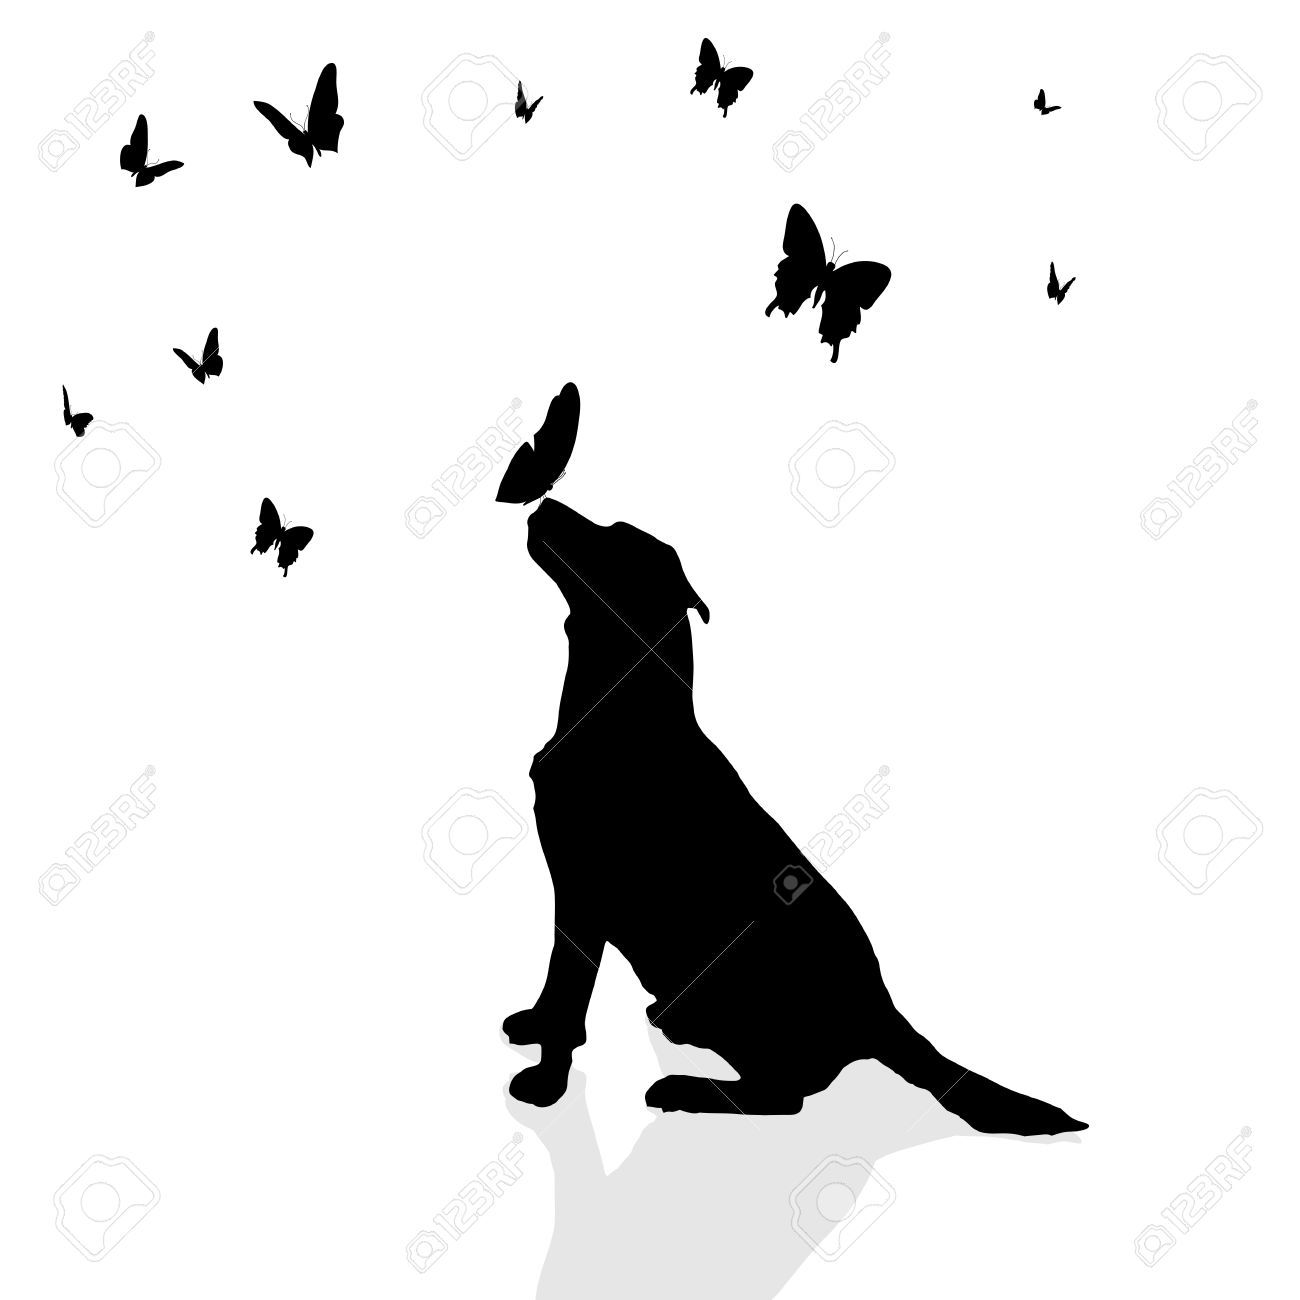 Pin By Sai Kumar On My Saves Dog Tattoos Tattoos For Dog Lovers Dog Silhouette